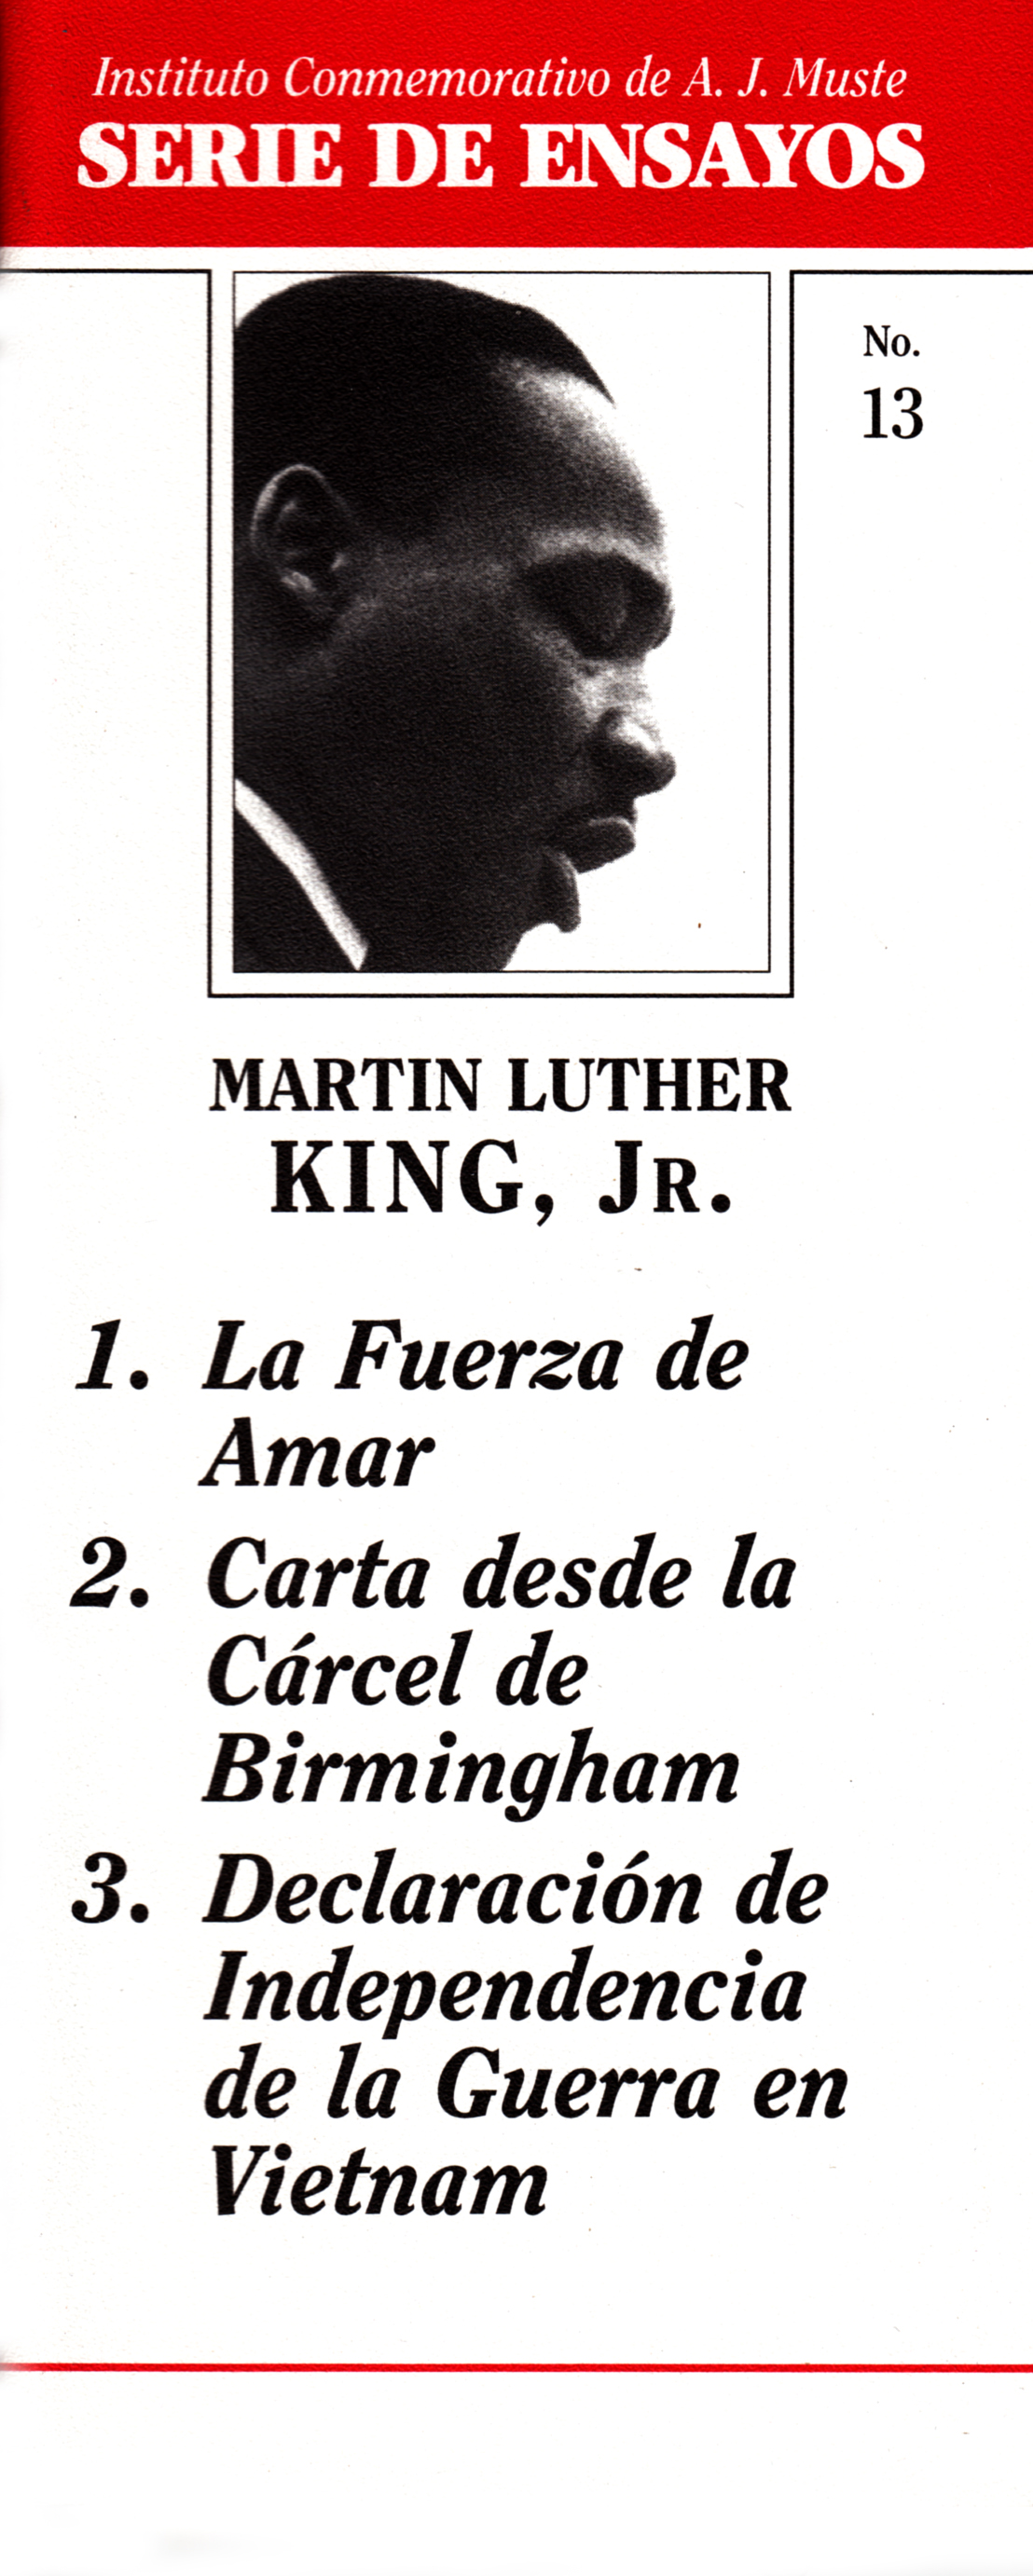 essays by martin luther king jr an essay on martin luther king jr essays by martin luther king jr war resisters leagueessays by martin luther king jr spanish